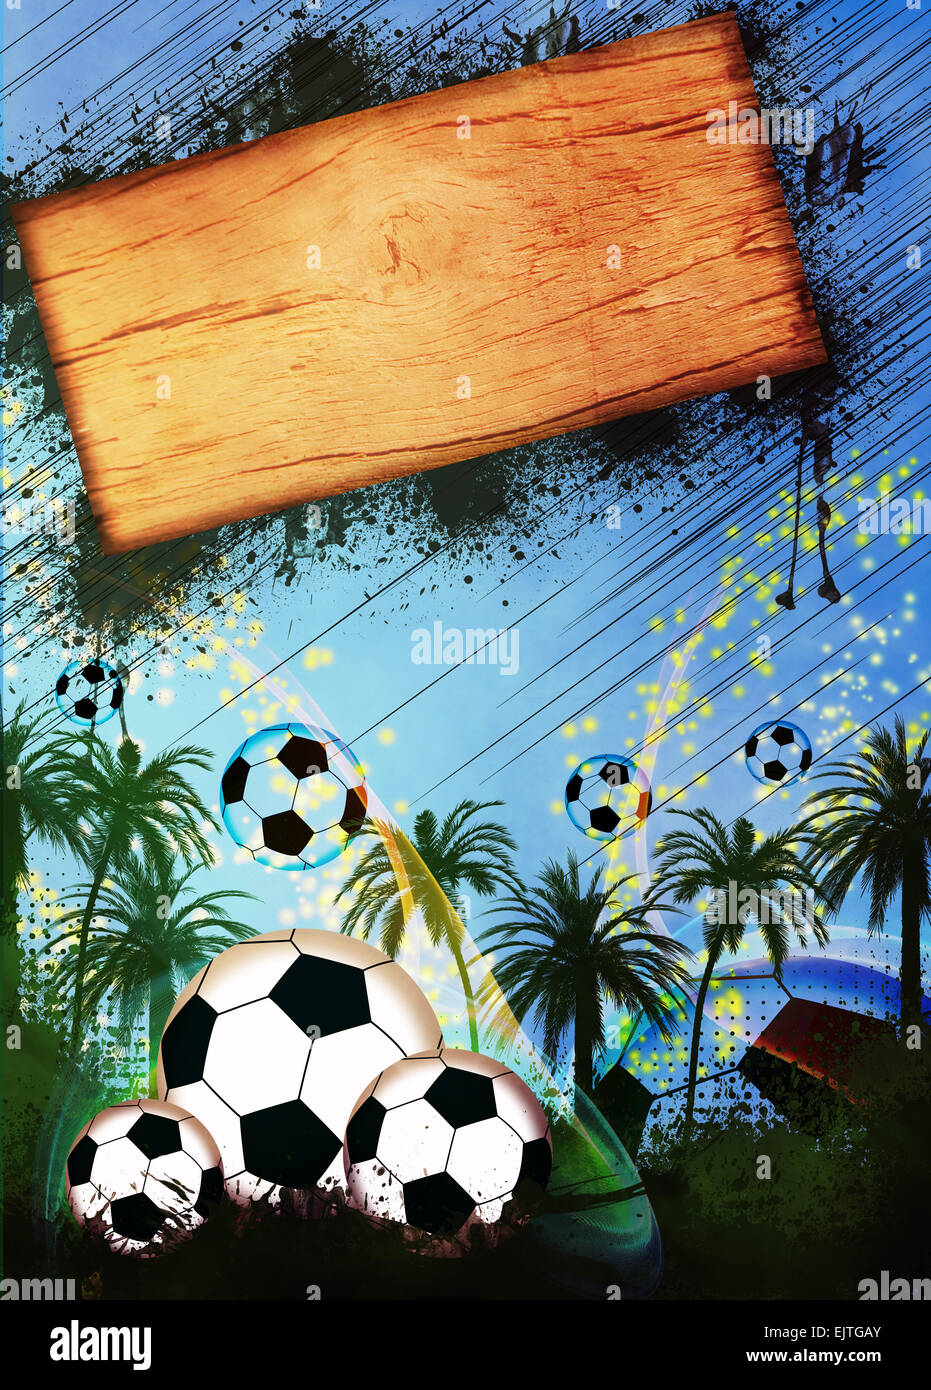 Football or soccer invitation poster flyer and other advert Stock